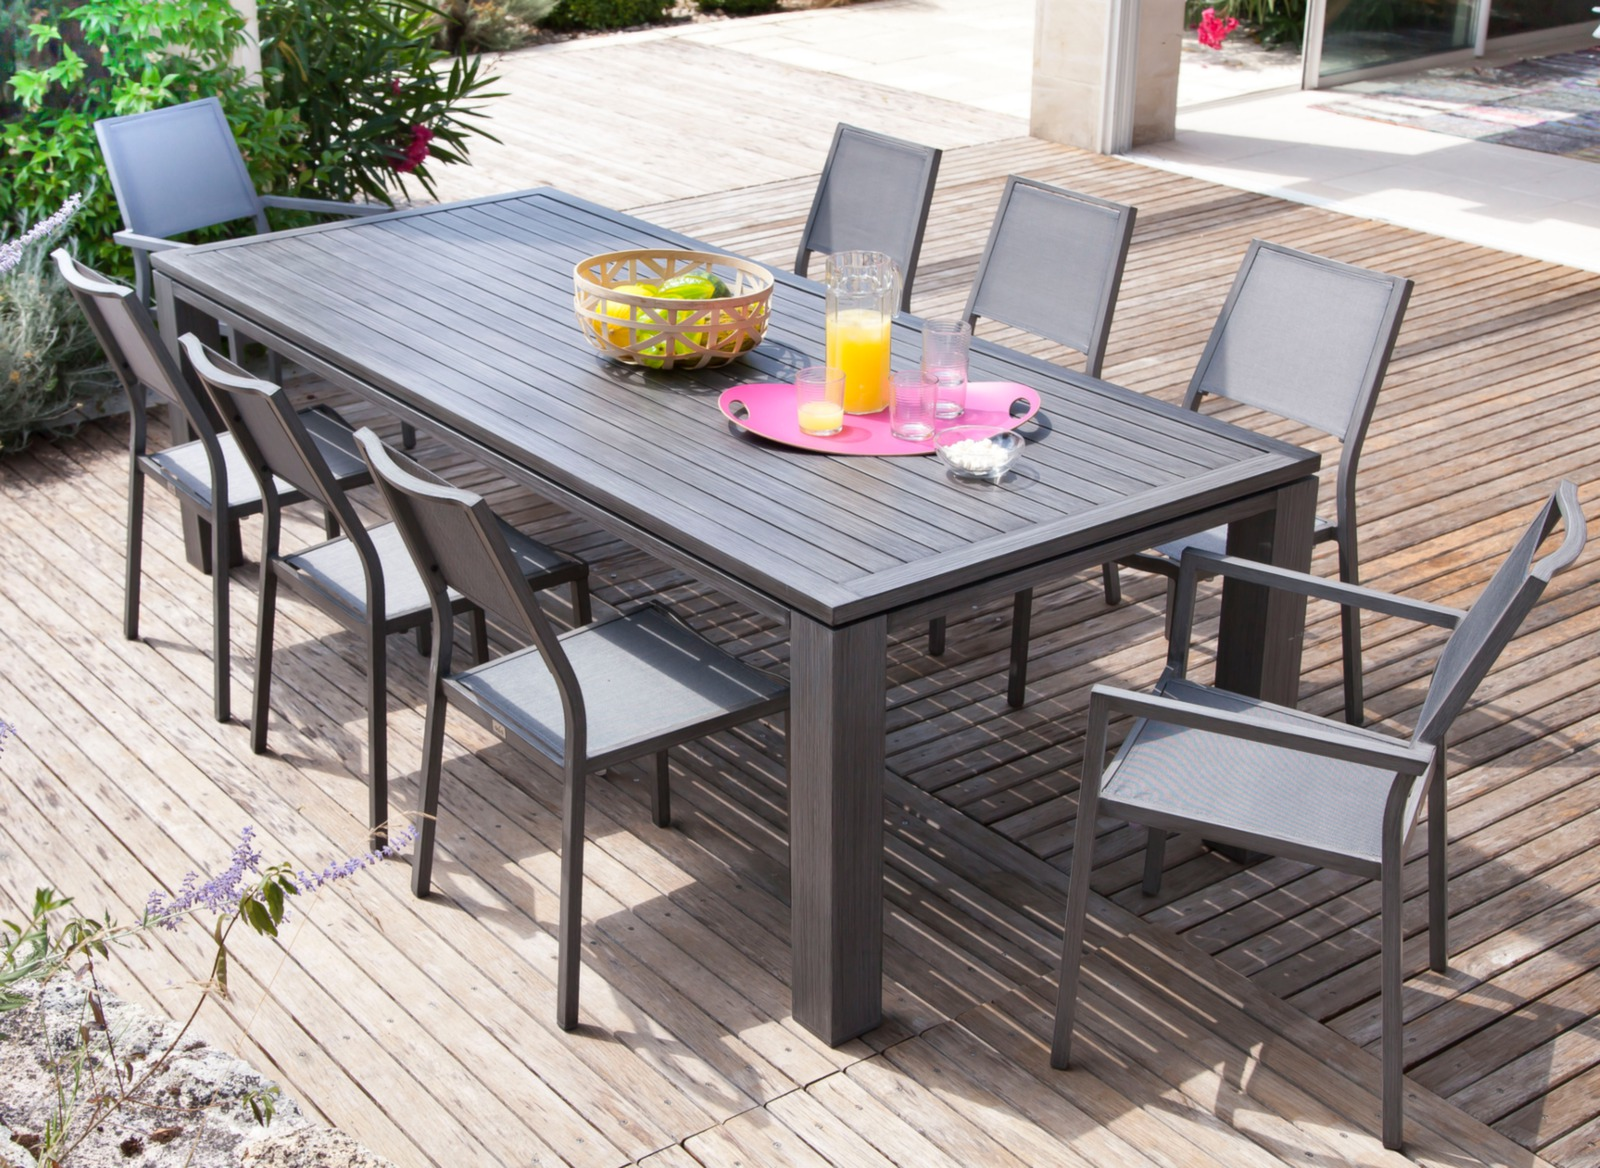 Salon de jardin avec grande table promotion proloisirs - Salon de jardin table ...